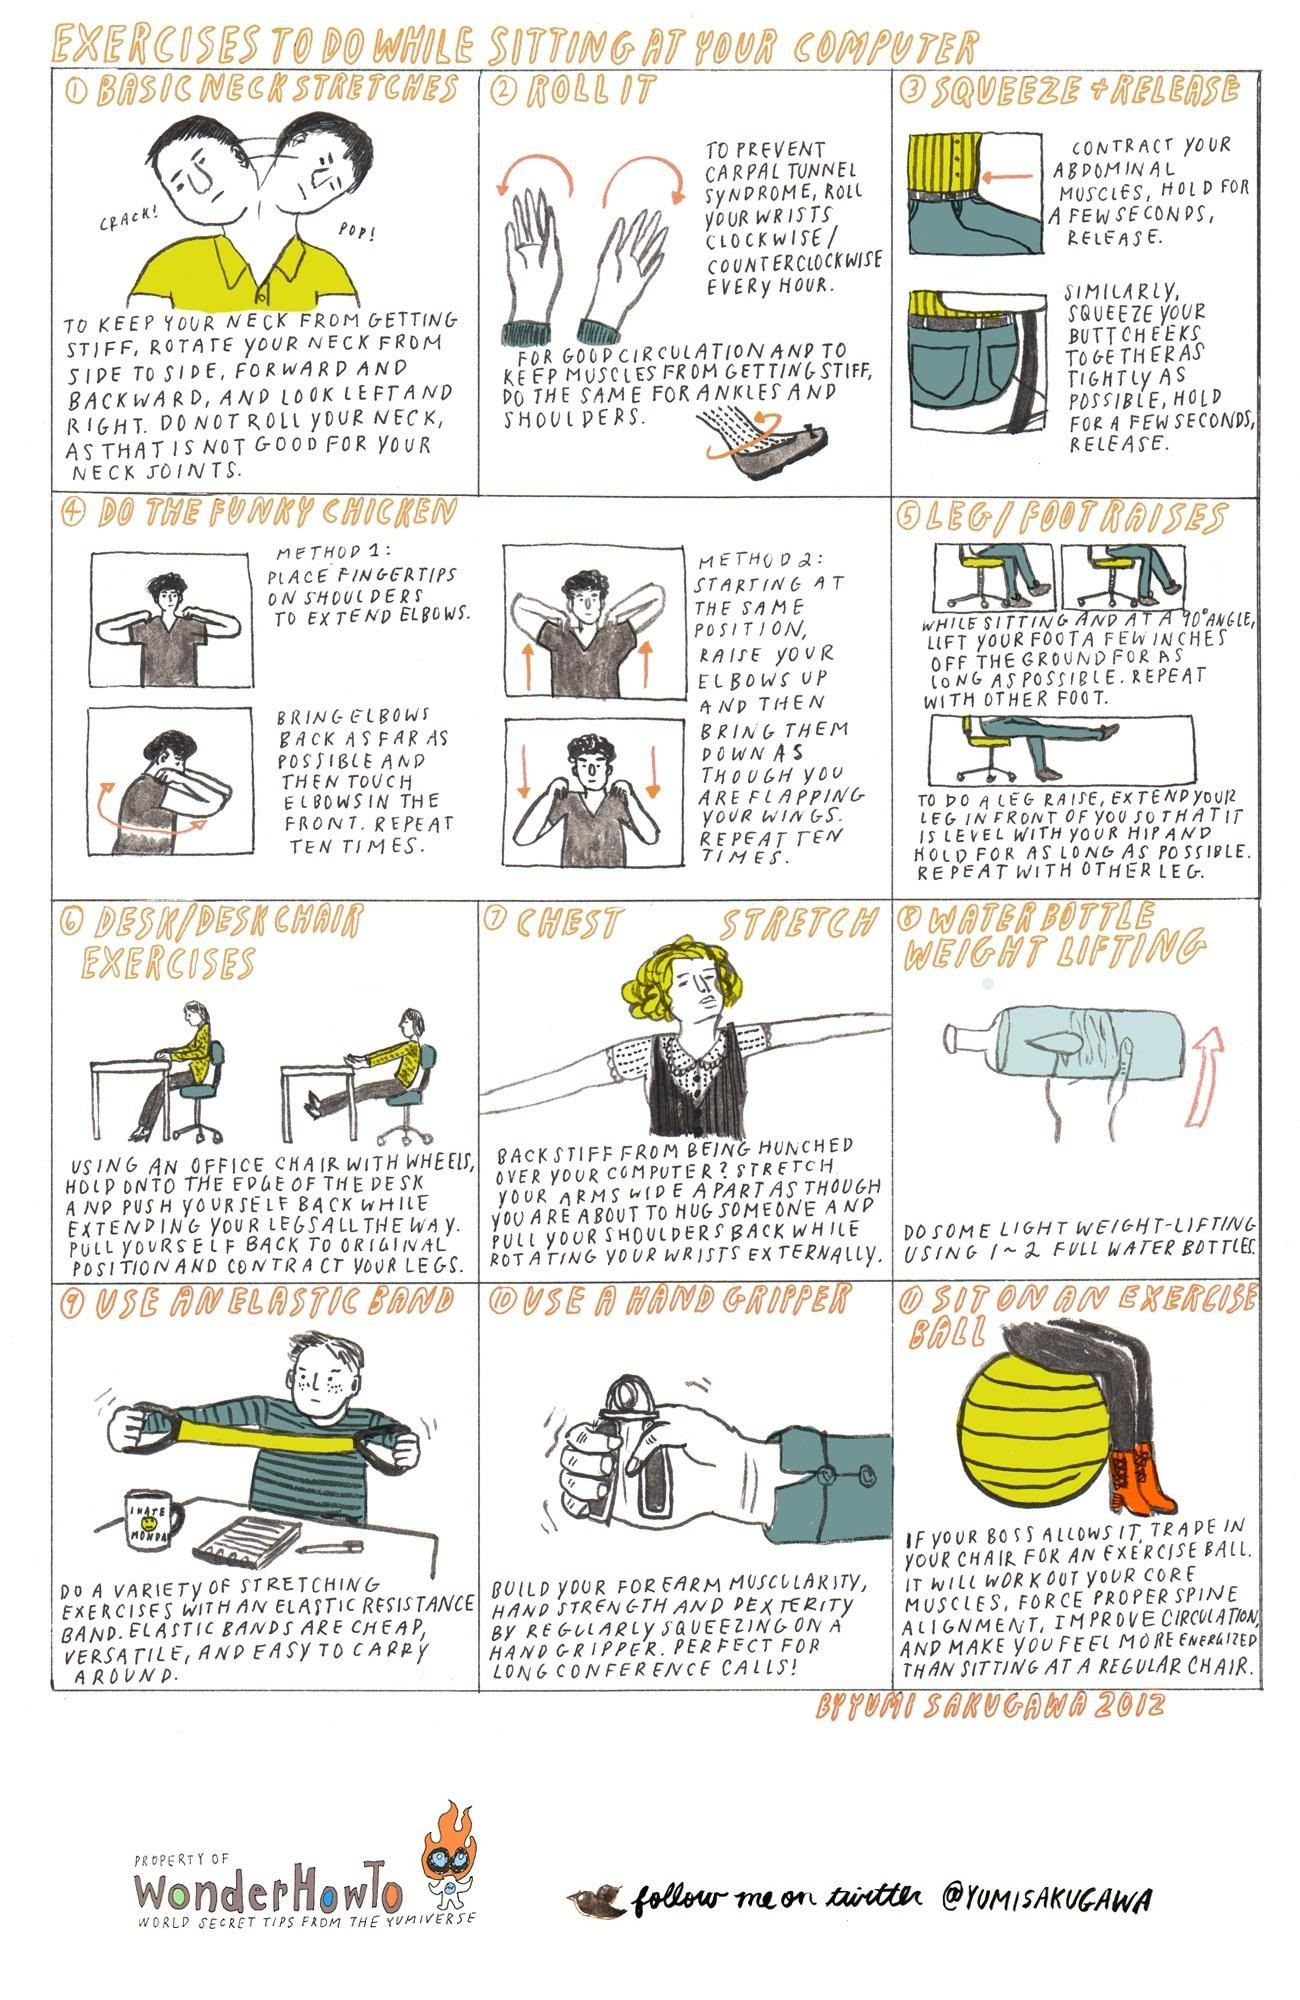 office chair workouts for abs antique living room styles 11 exercises to do while sitting at your computer  the